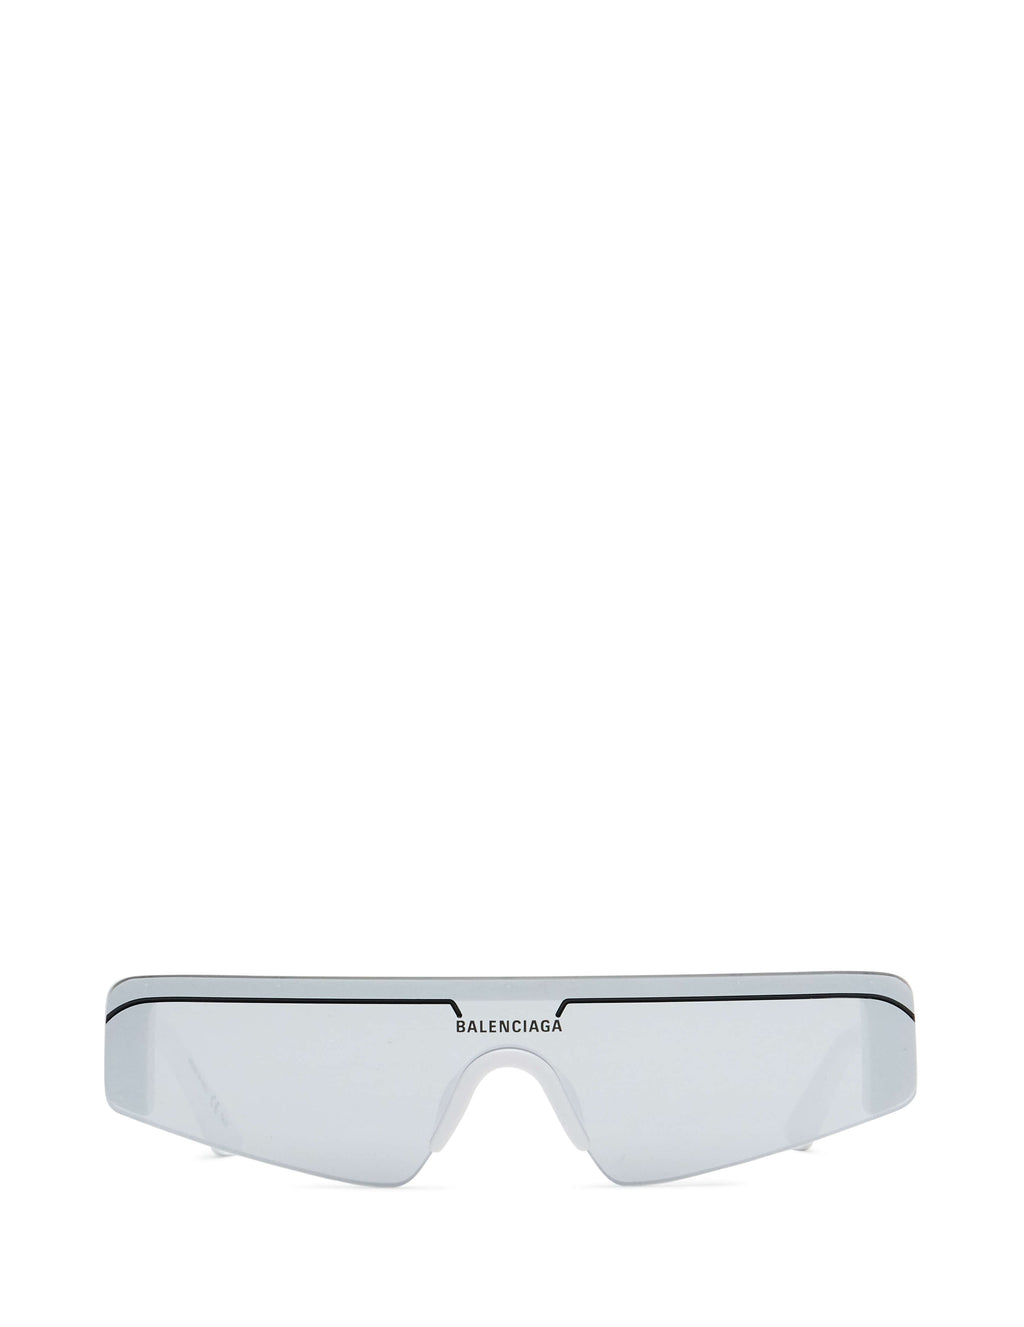 Balenciaga Eyewear Unisex White and Silver Rectangular Shield Sunglasses BB0003S002